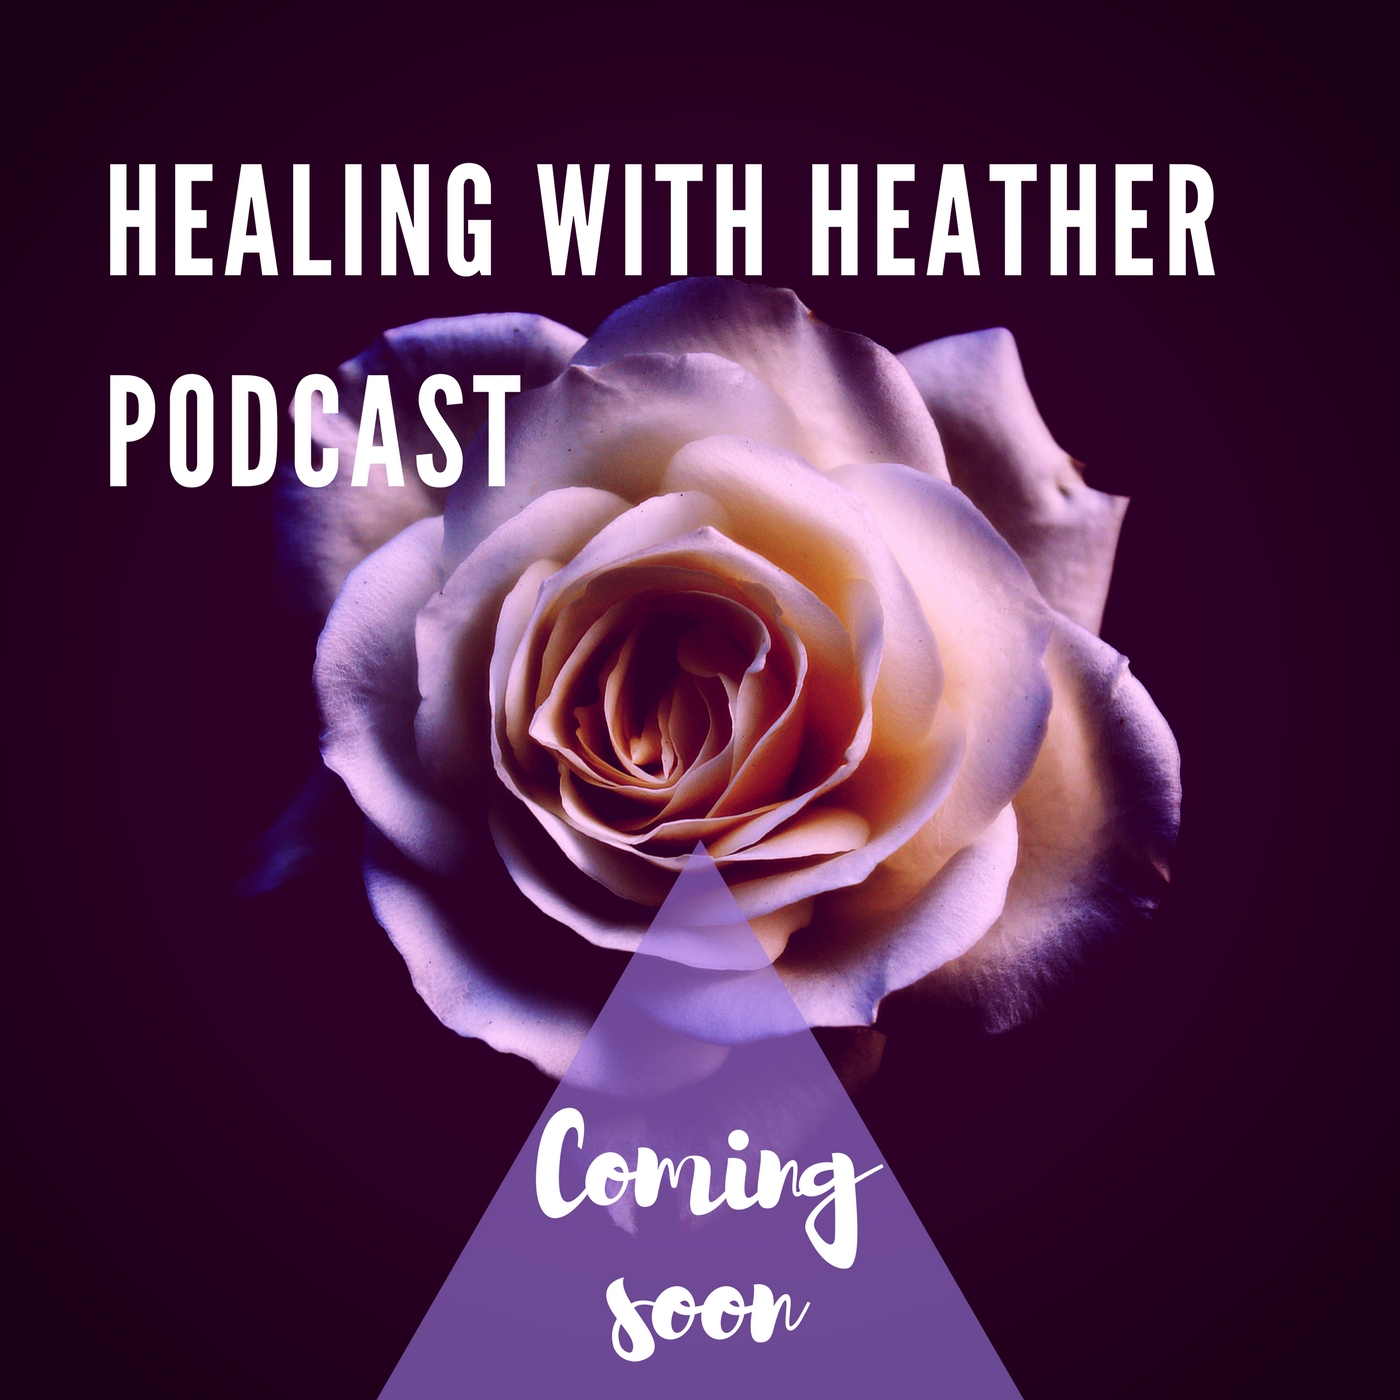 #HealingWithHeather